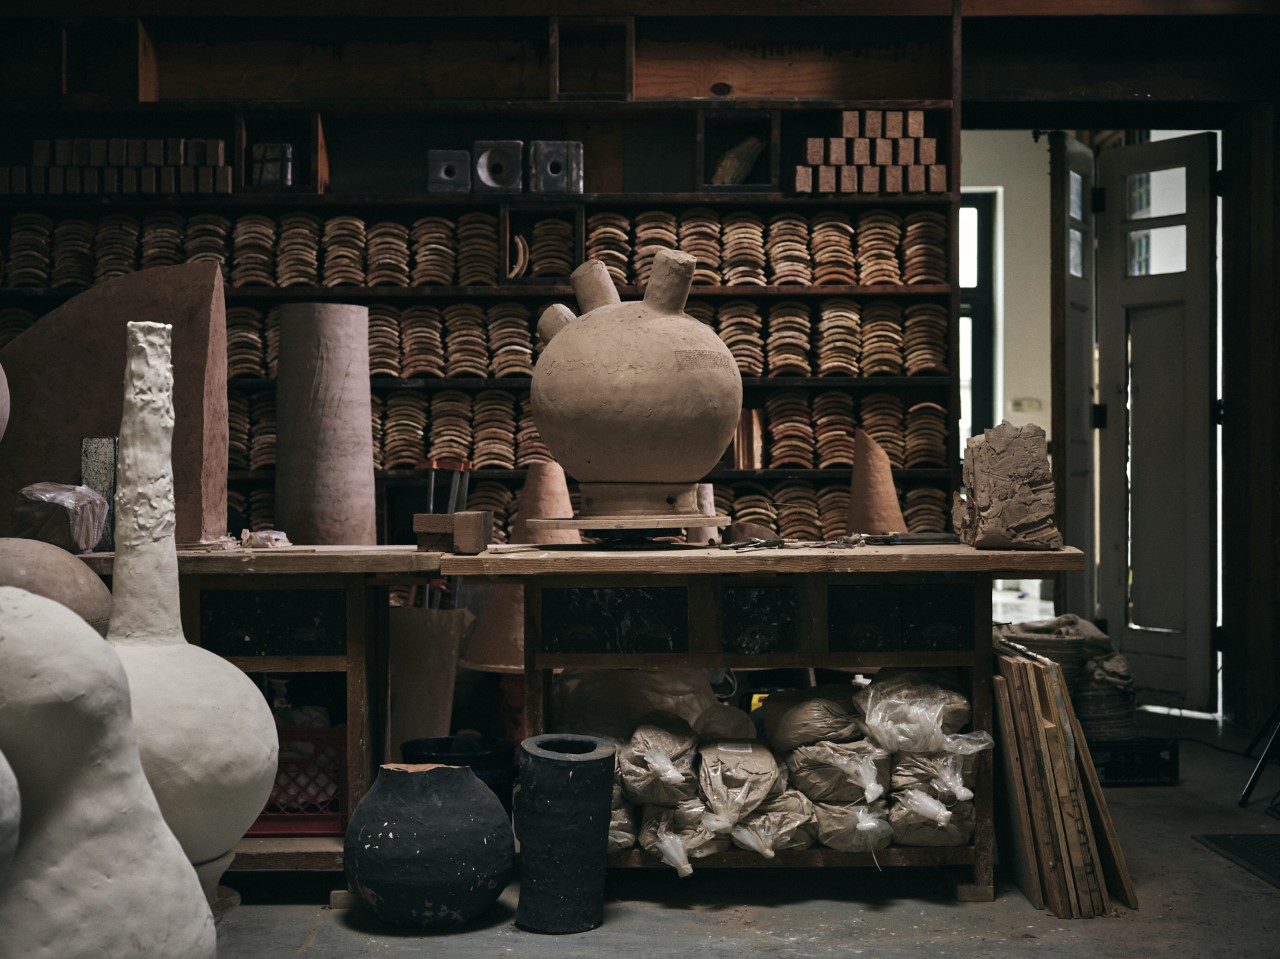 A photograph of an artists' workshop. In the centre is a large workbench with bags of clay piled beneath it. On top of the workbench is a large tan-coloured spherical clay sculpture with three tubular shapes protruding from its top. In the foreground are more vessle-like clay sculptures, ranging from burnt black to pale grey in colour. In the background, the walls of the workshop are covered in dark wooden shelves which are filled with terra cotta roof tiles. To the far right of the image, a white folding door is left ajar.